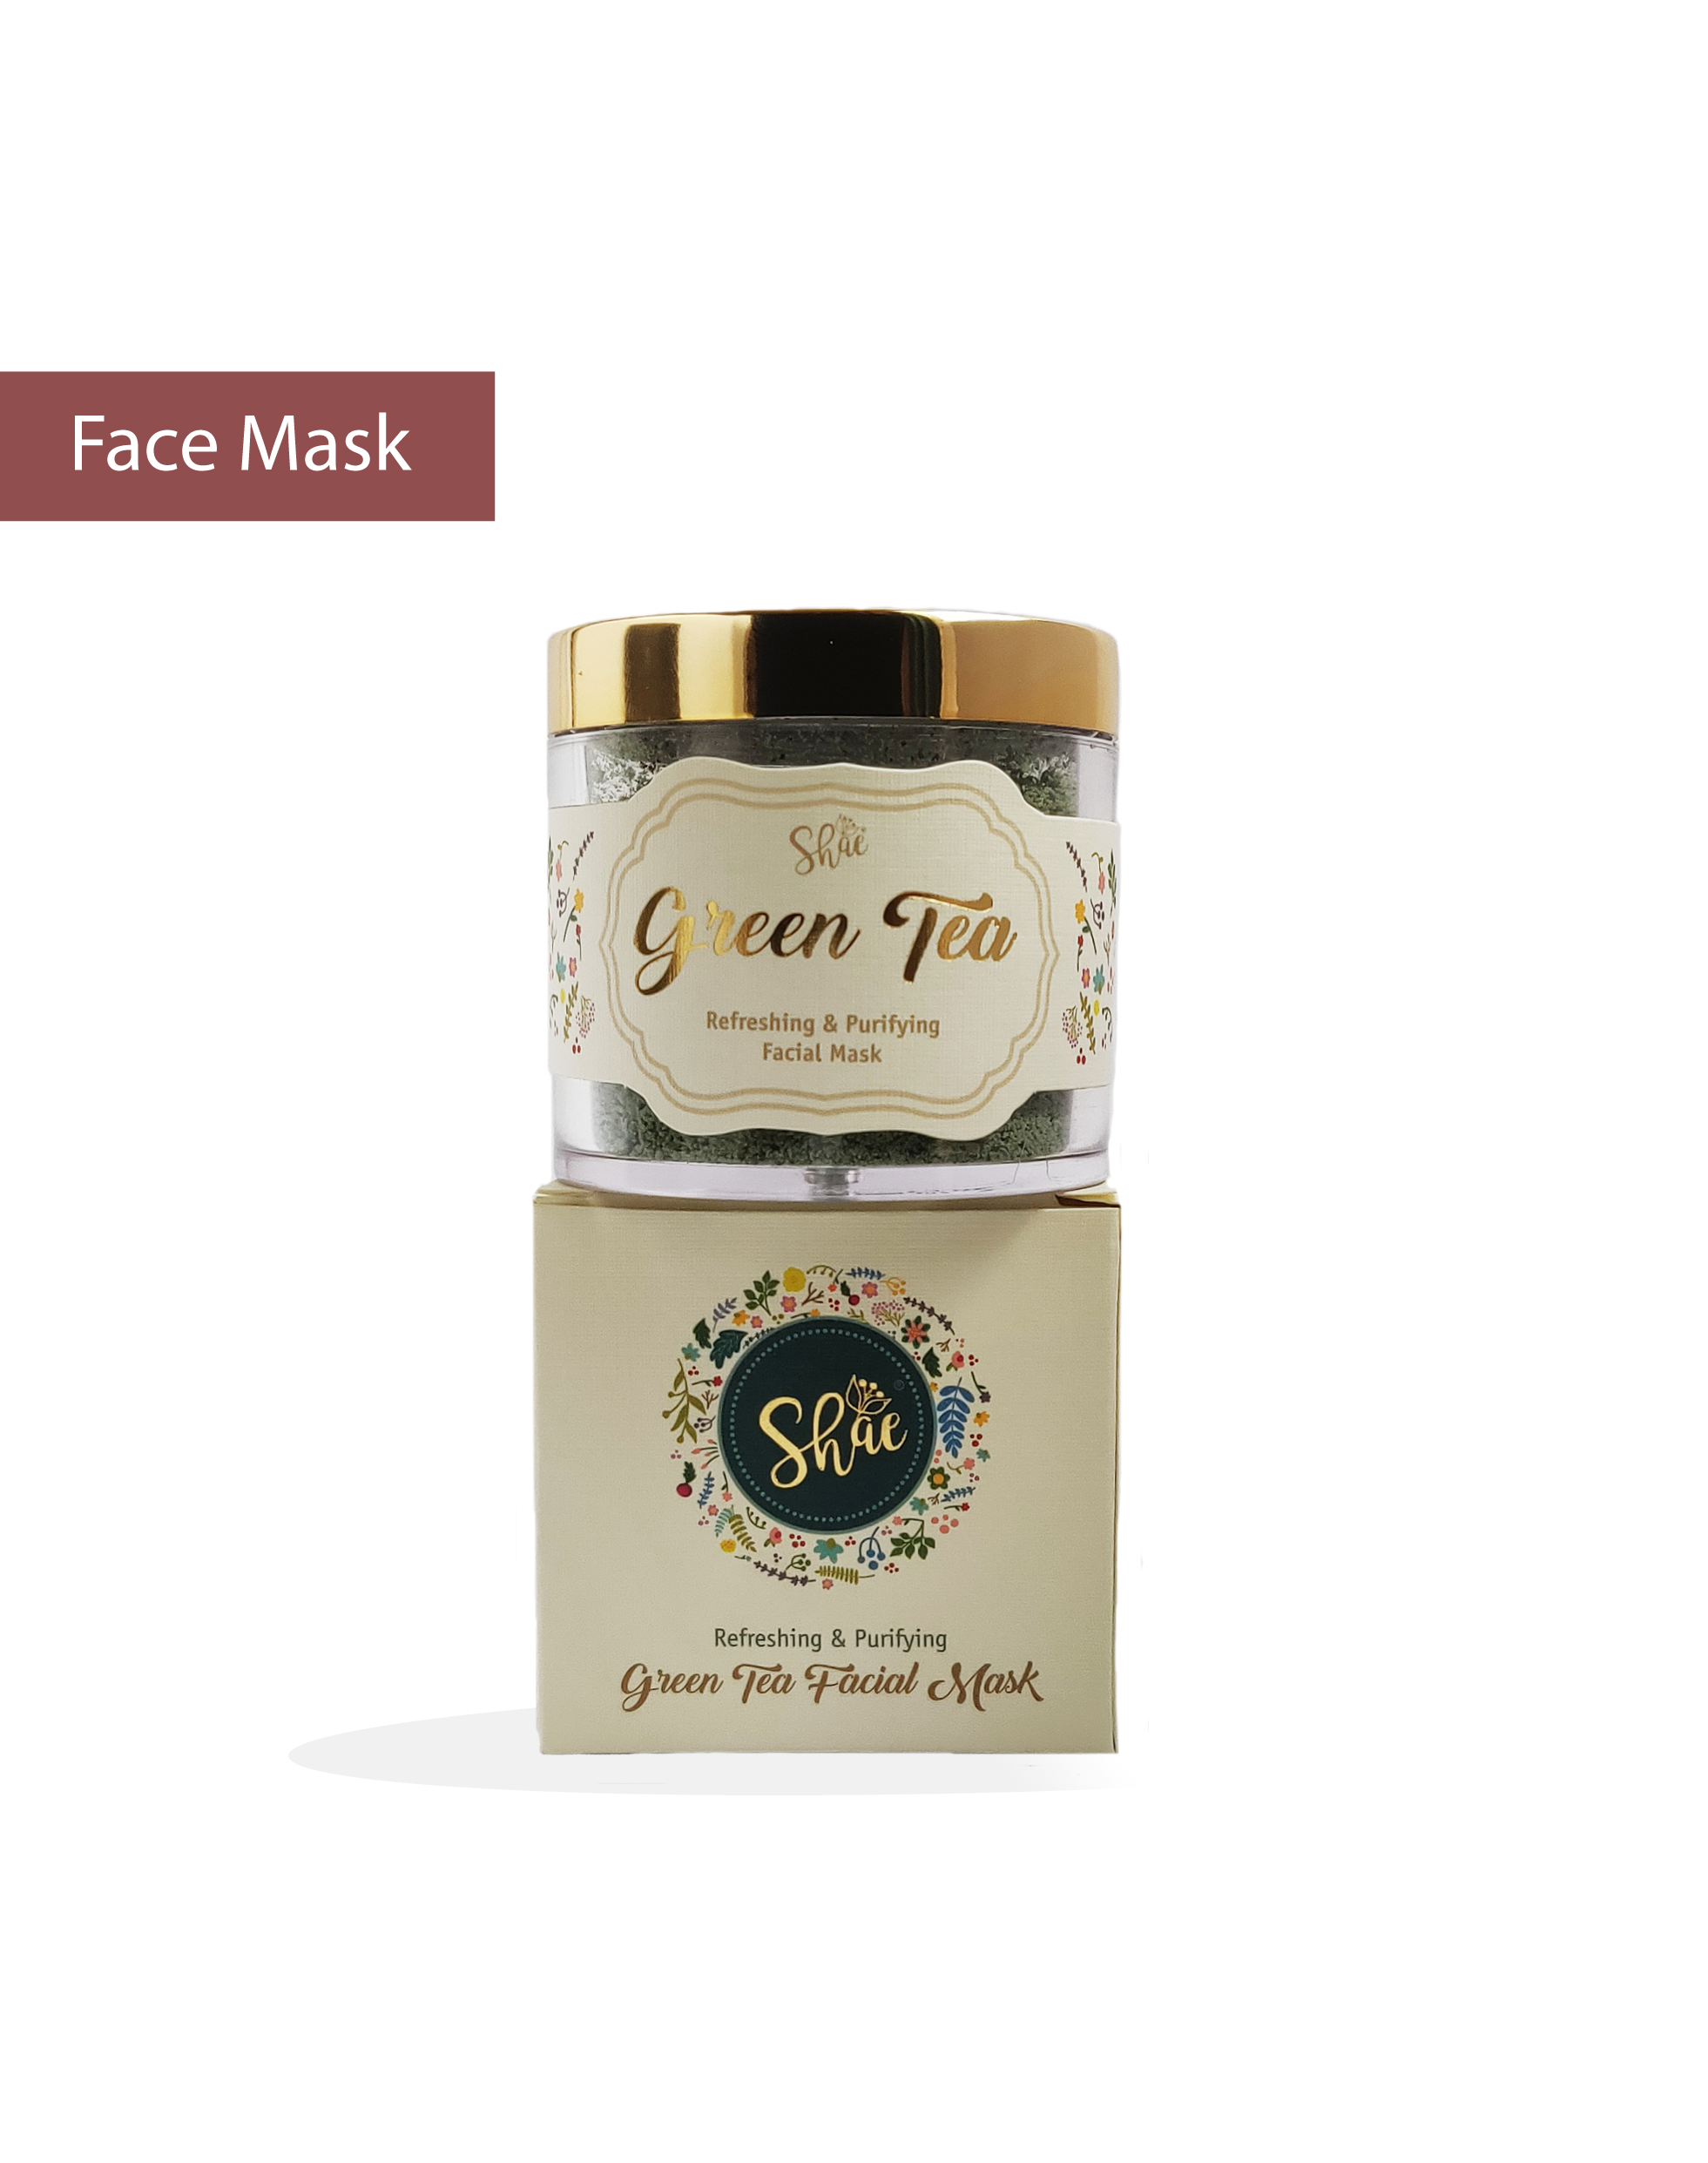 Green Tea Facial Mask by Shae (100 gm) - Shae